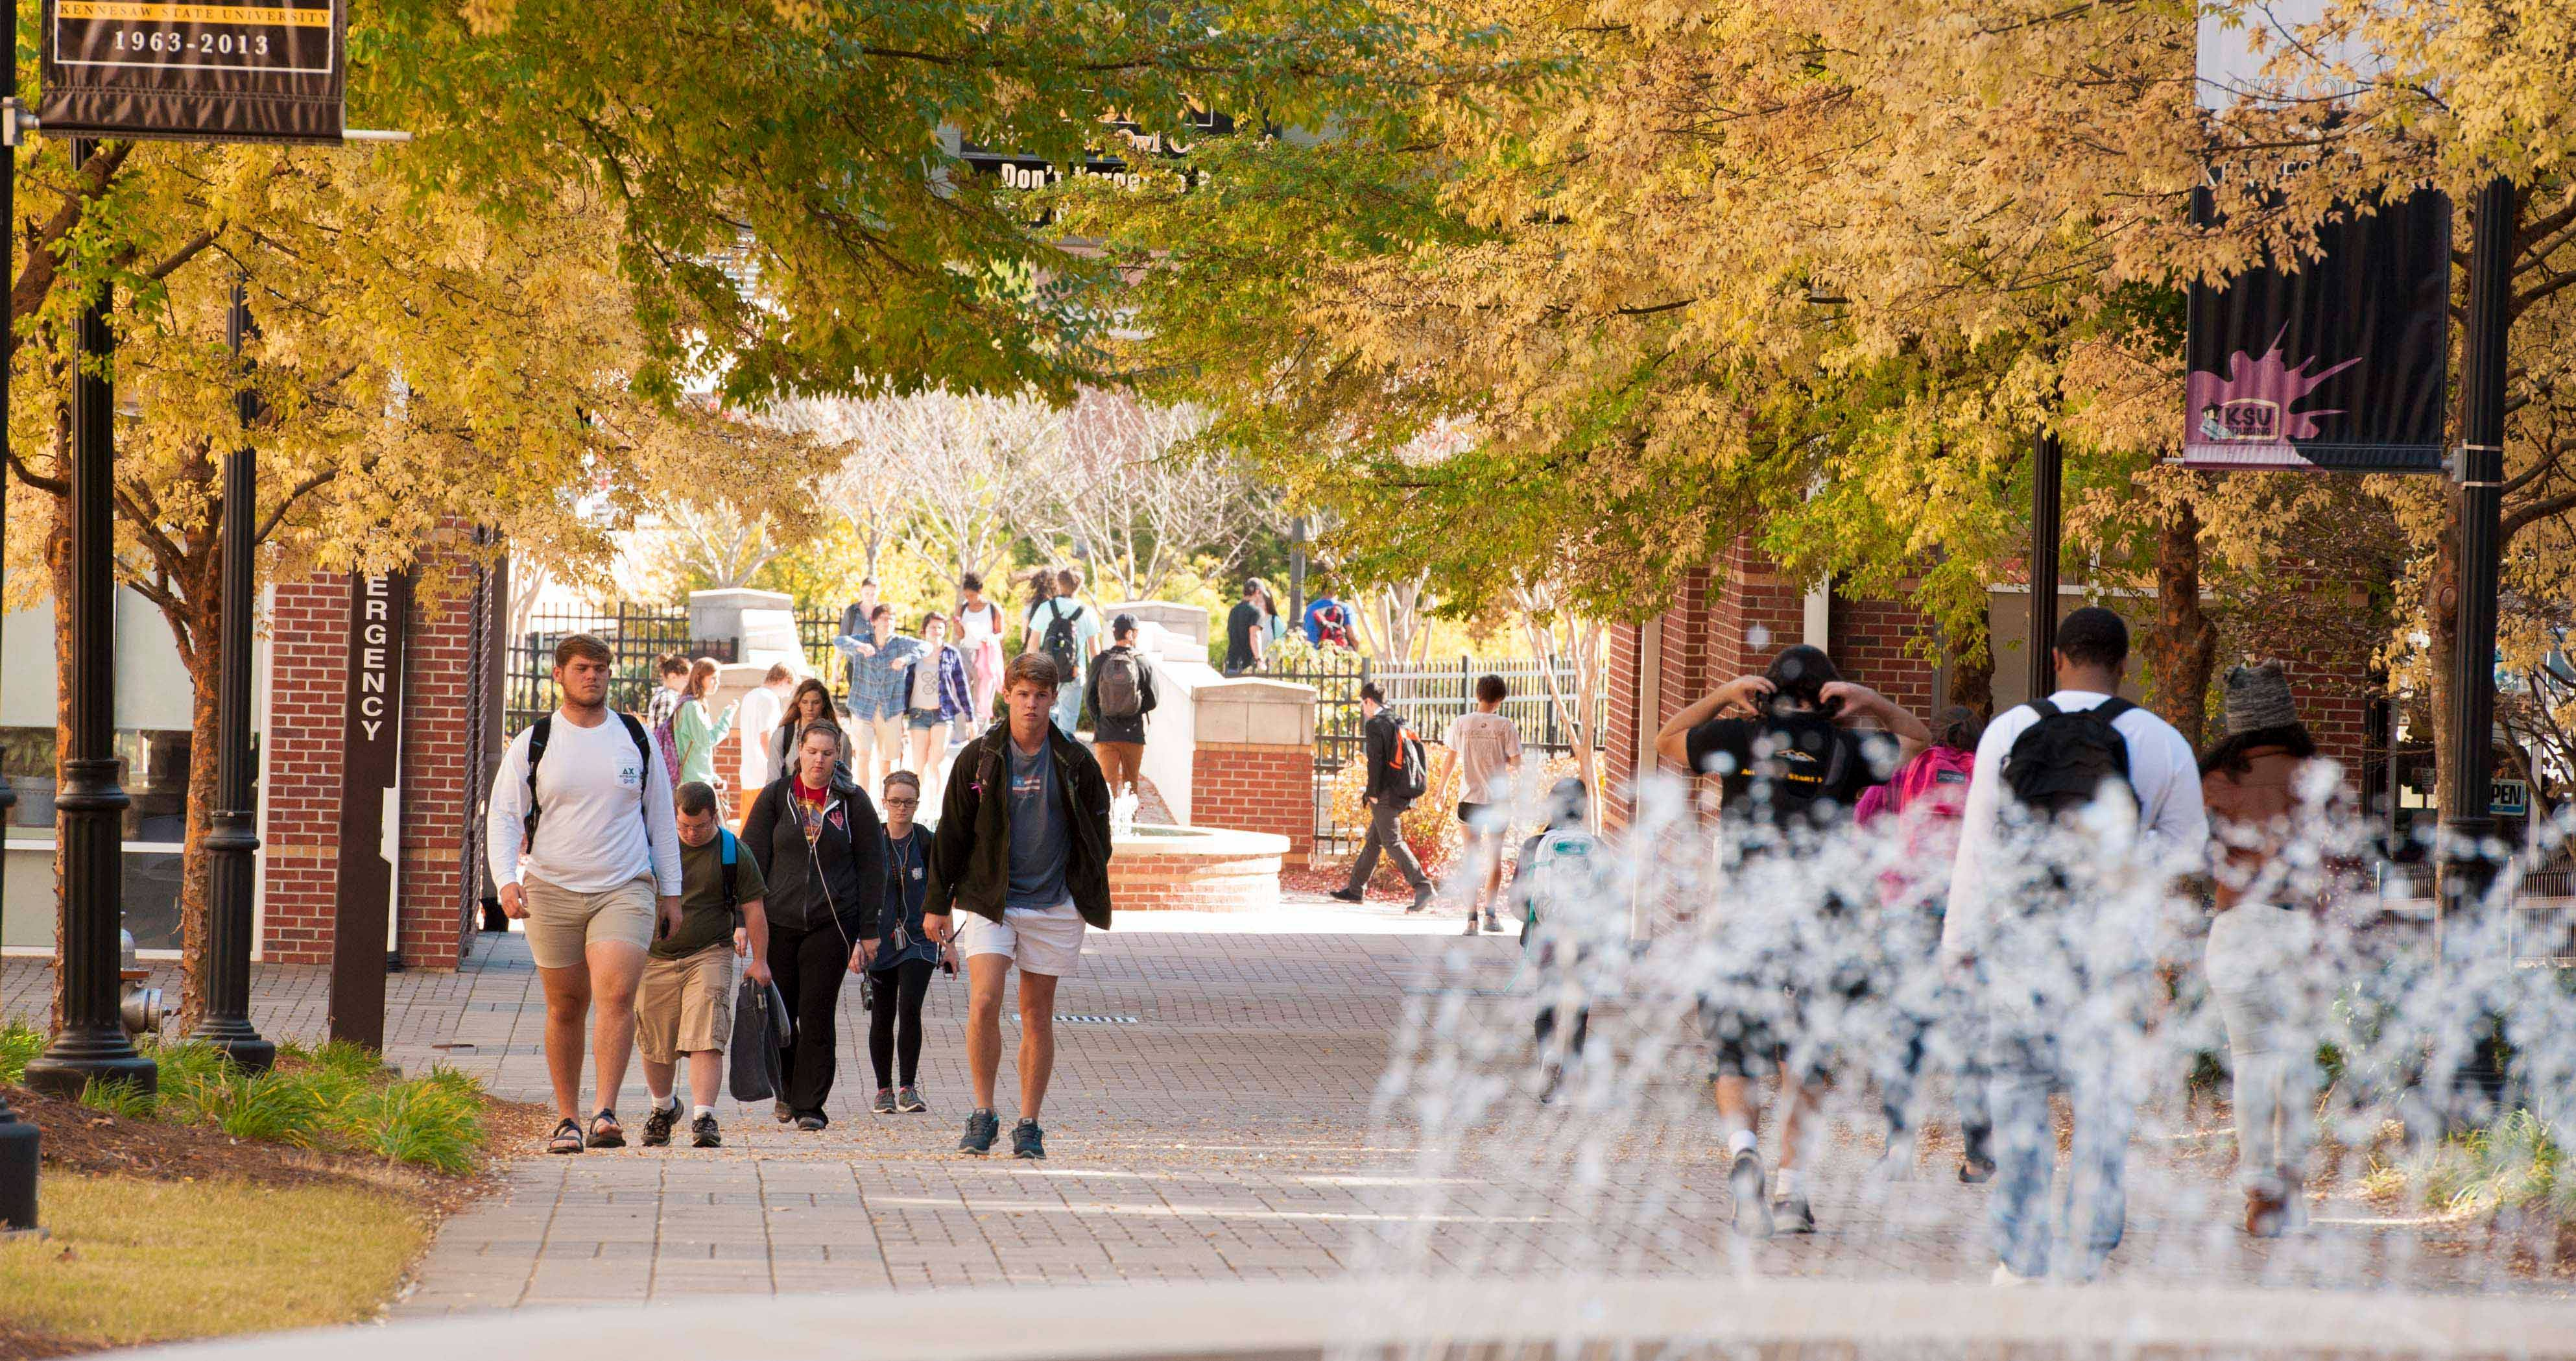 Fall Campus 0926